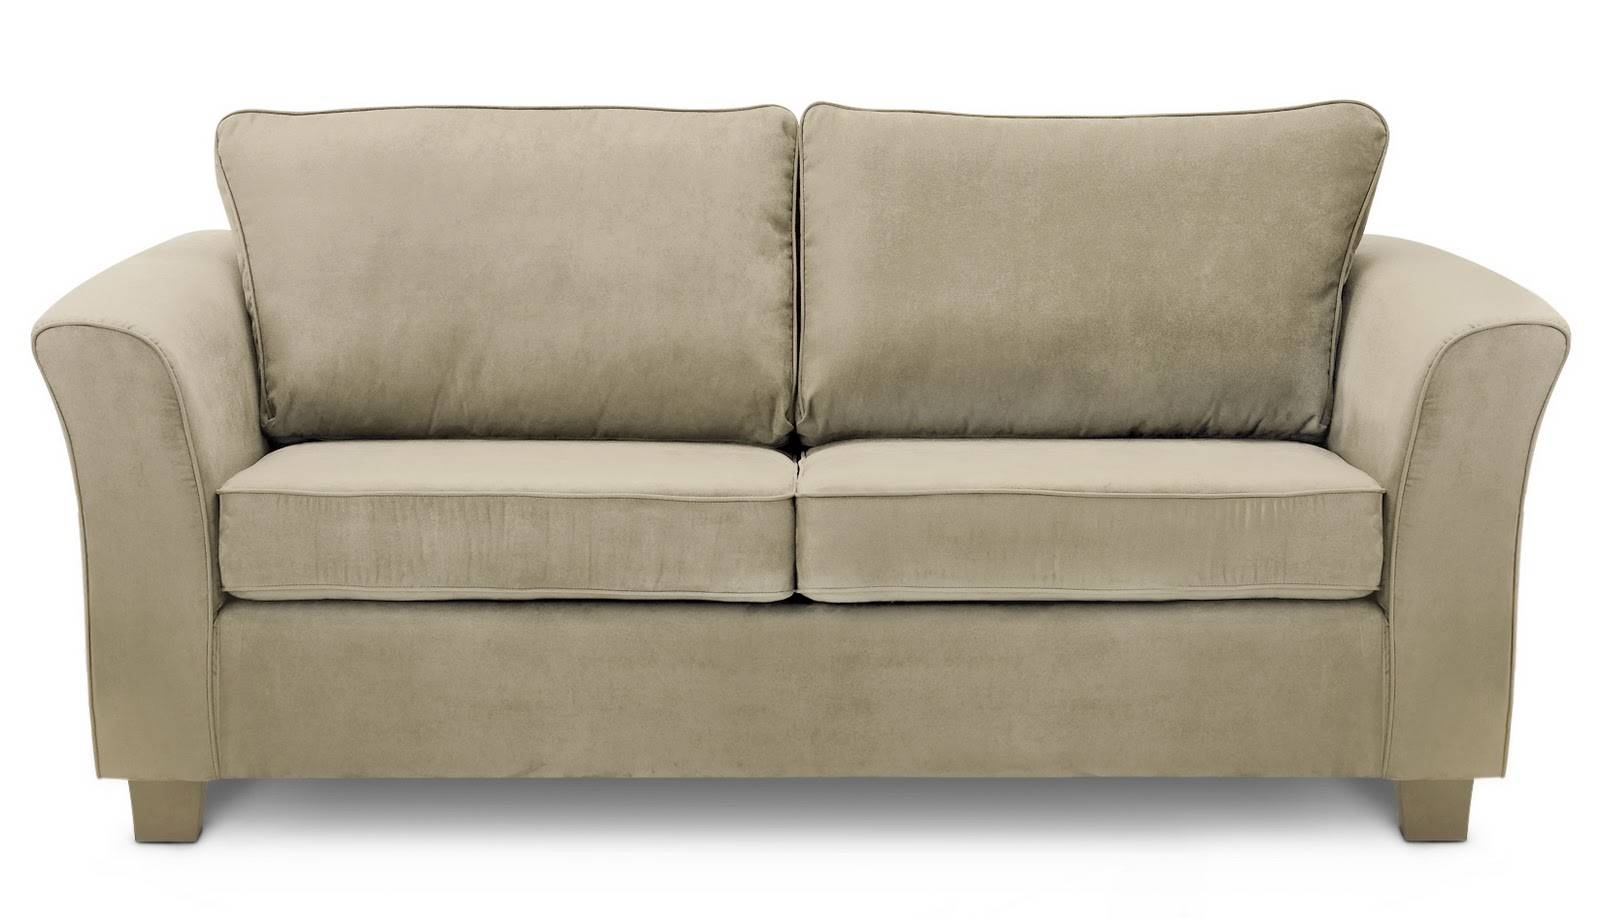 Sofa : Cool Sofas For Cheap Sale Home Design Furniture Decorating inside Cool Cheap Sofas (Image 23 of 30)